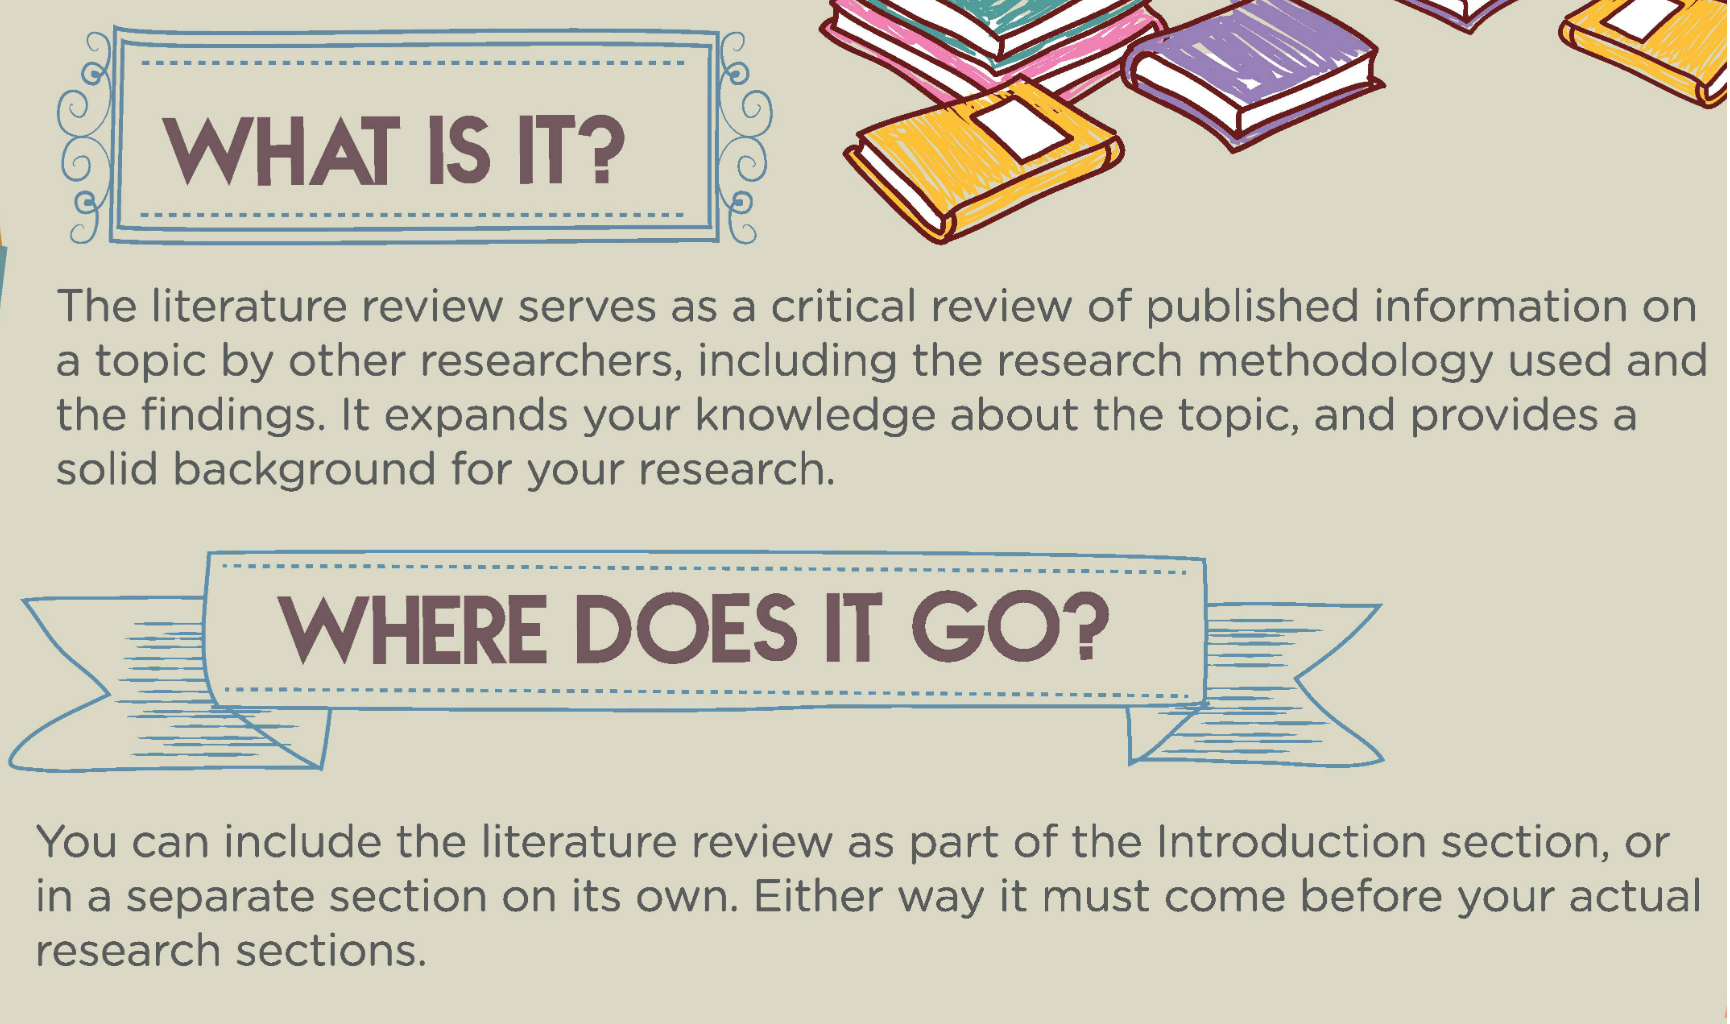 phd thesis literature review word count Advice on literature reviews learn to use styles in word as one of the first things you do, and use styles for all your formatting, especially for headings in a thesis by publications, most of the literature review occurs within the individual publications, although you can include a separate chapter of.